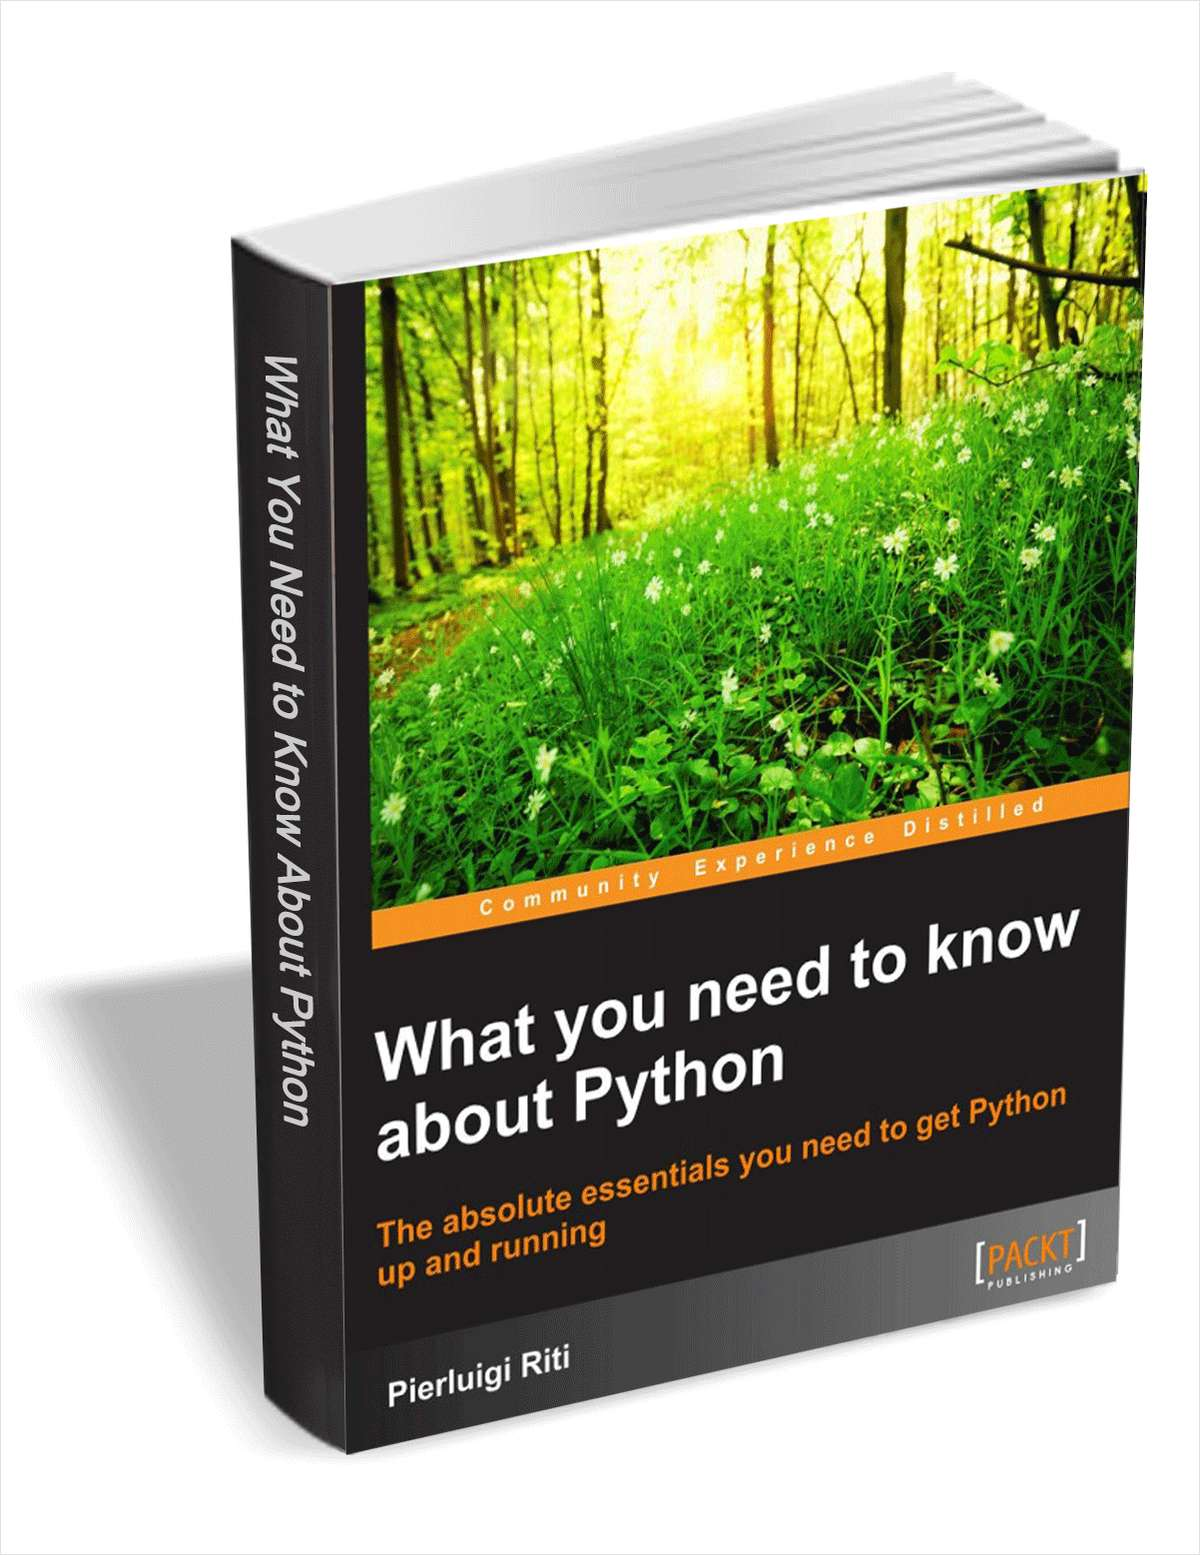 What You Need to Know About Python FREE For a Limited Time